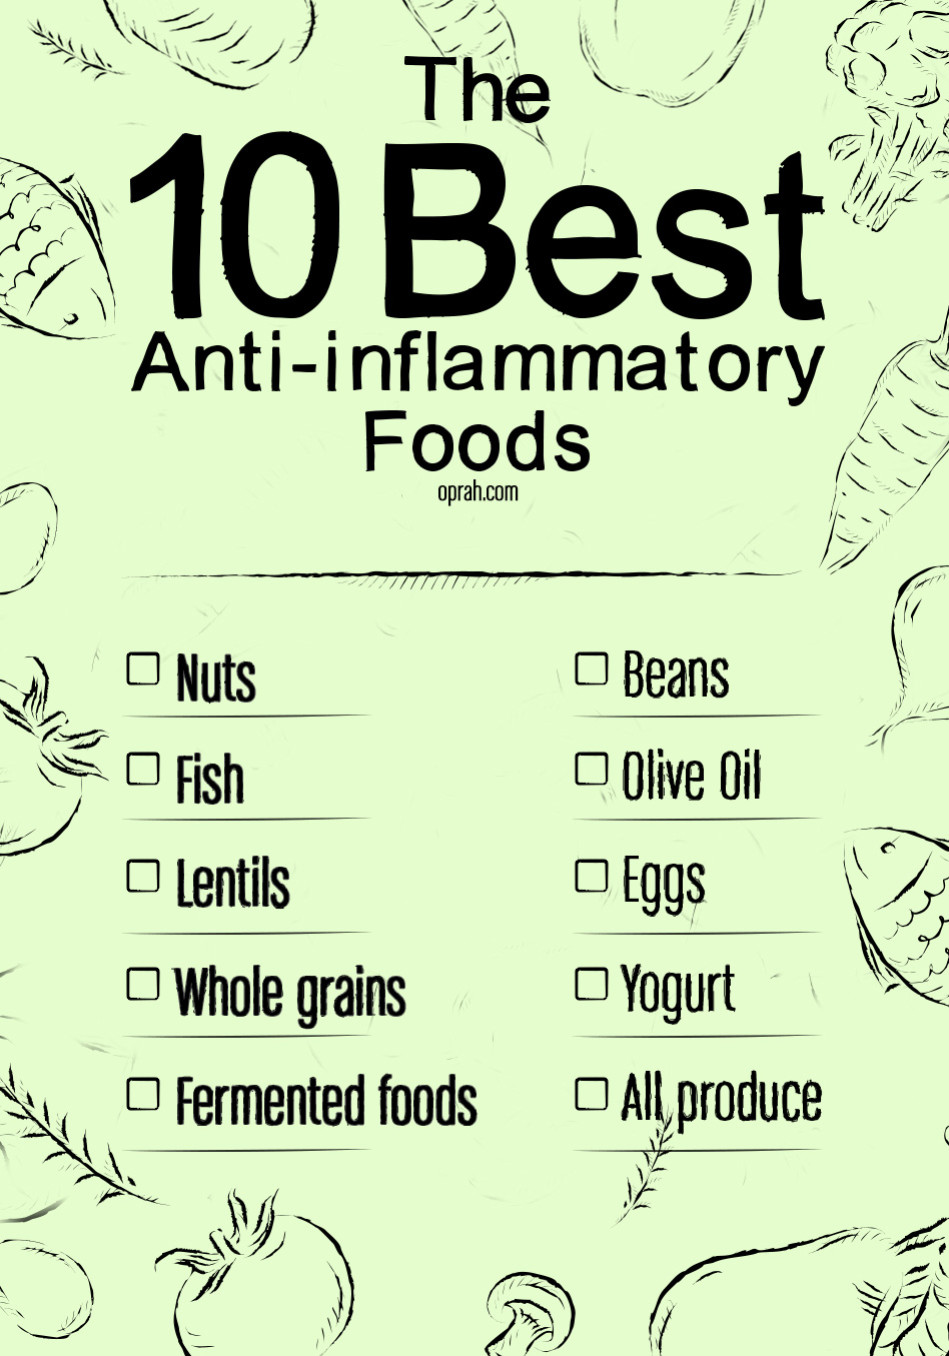 eat rice on anti inflamation diet?